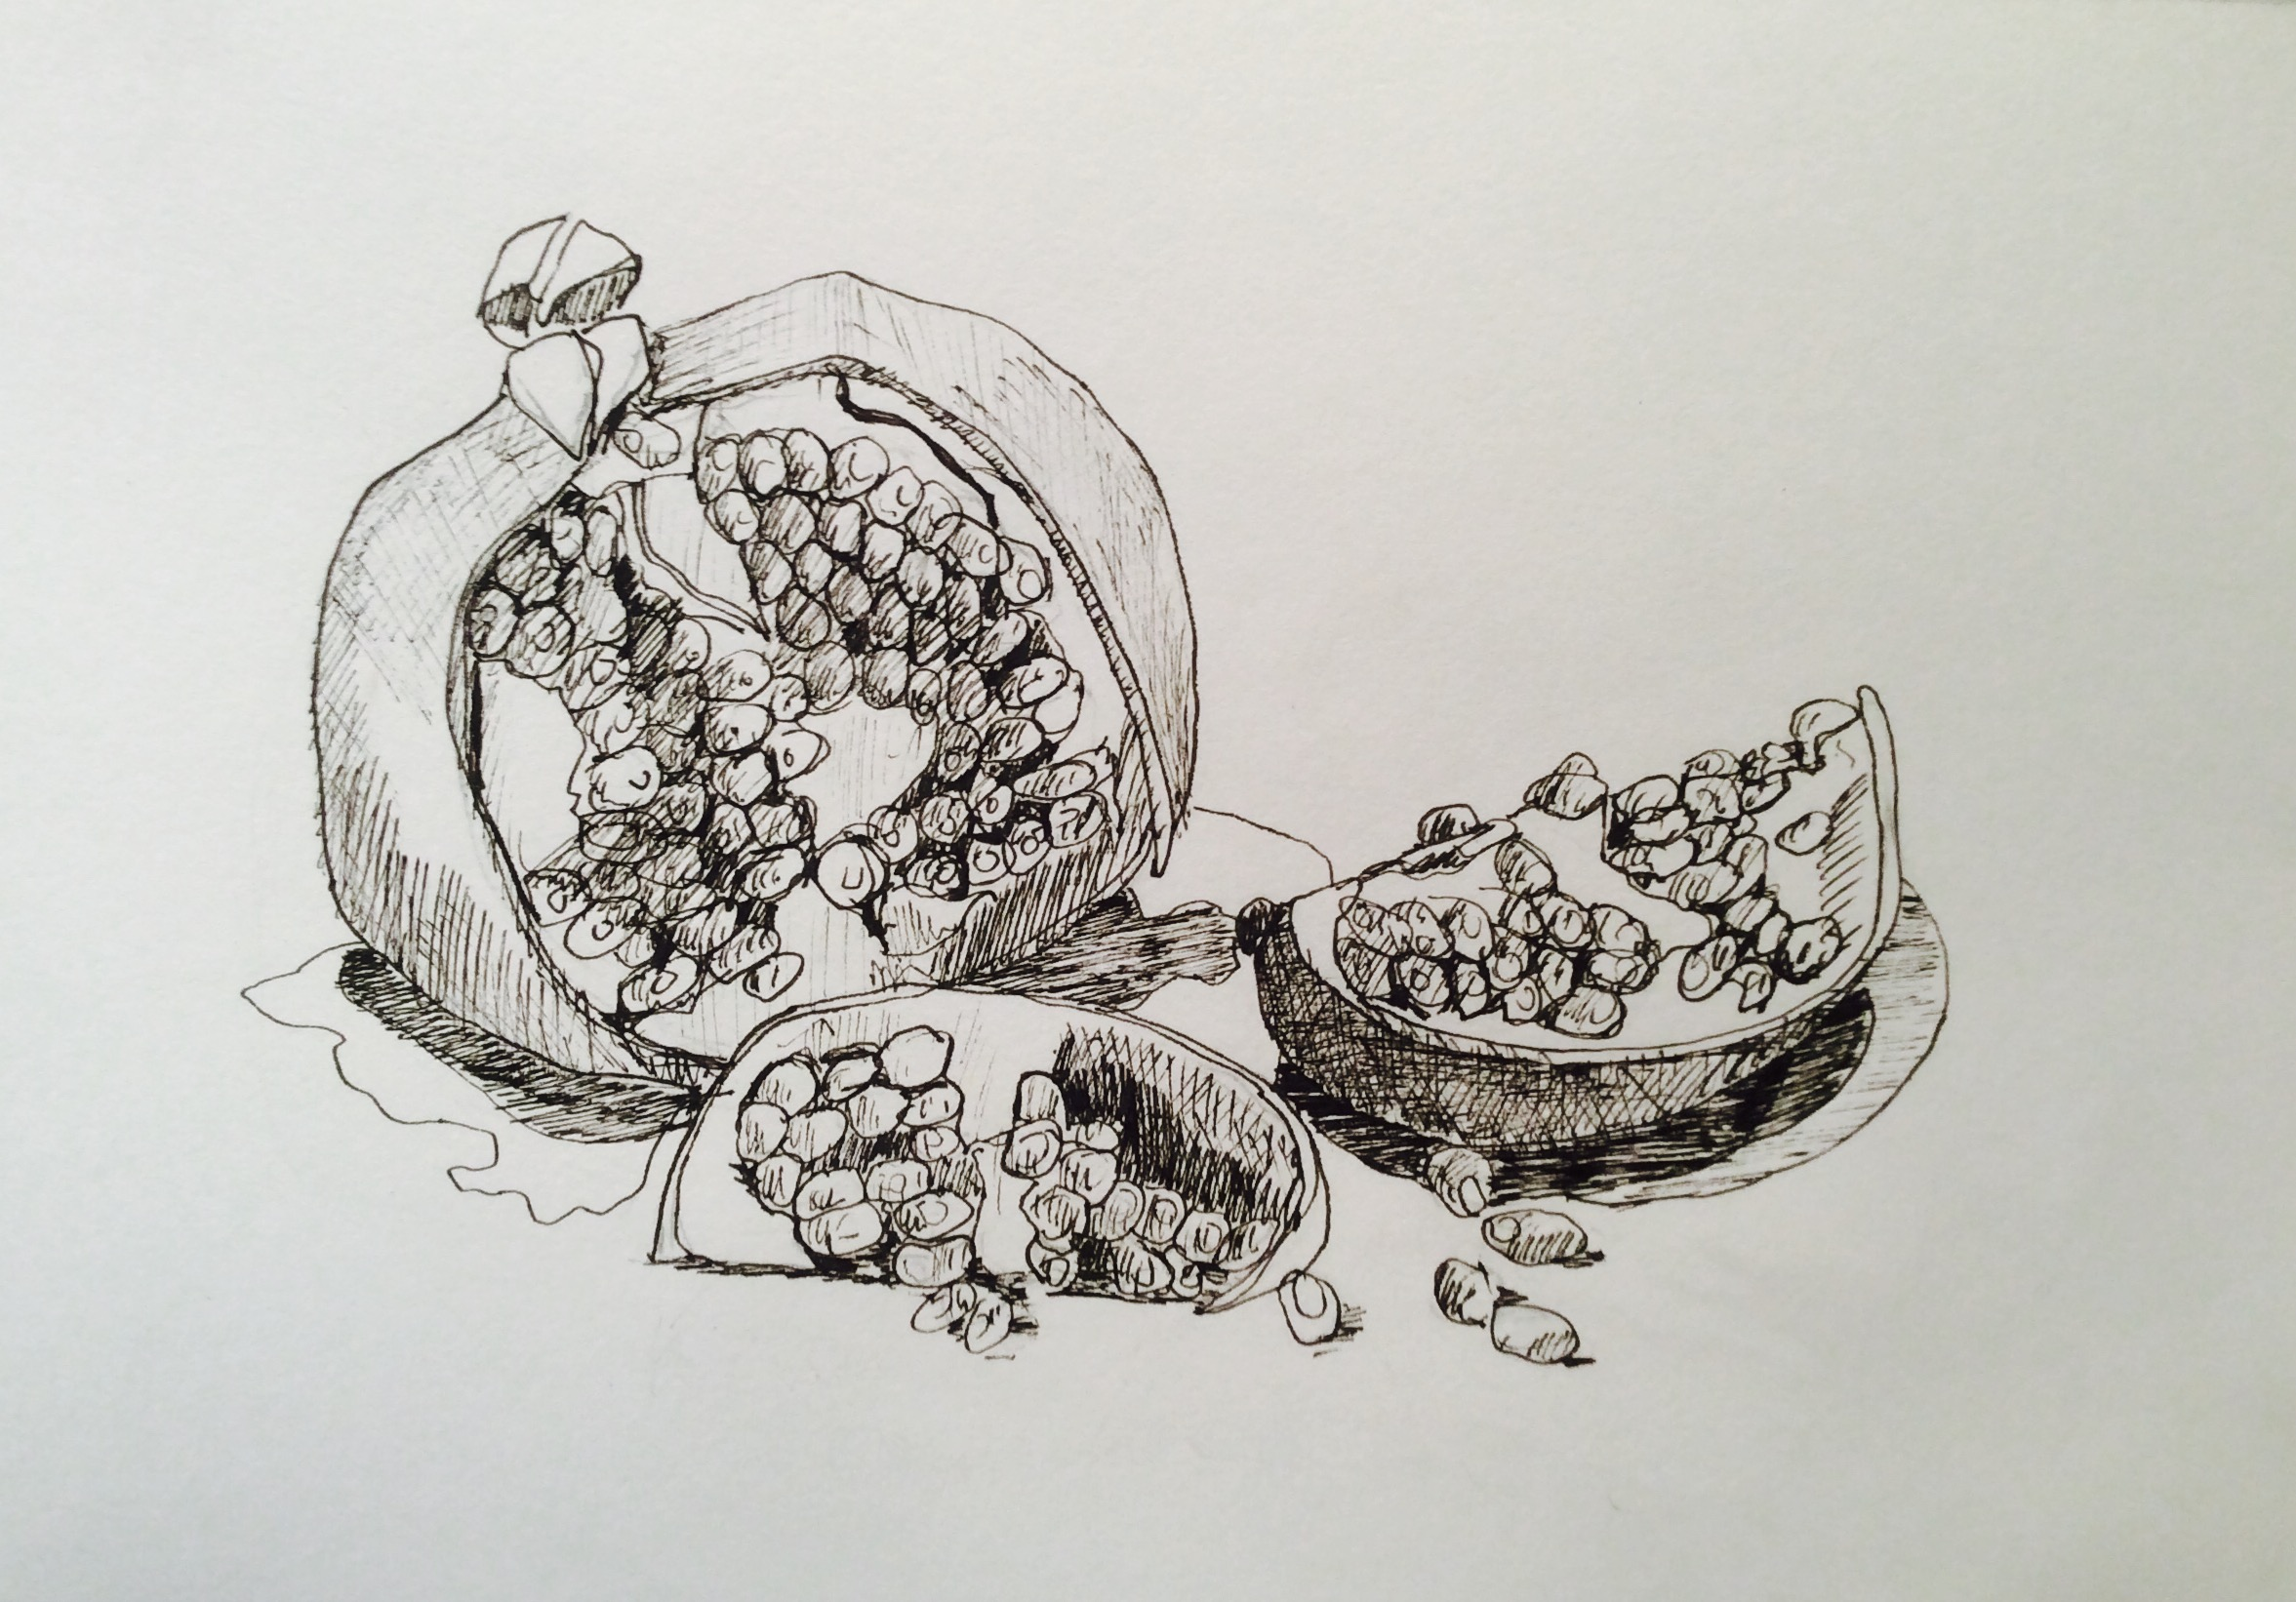 Pomegranate, ink on paper, daily drawing 11-12-16